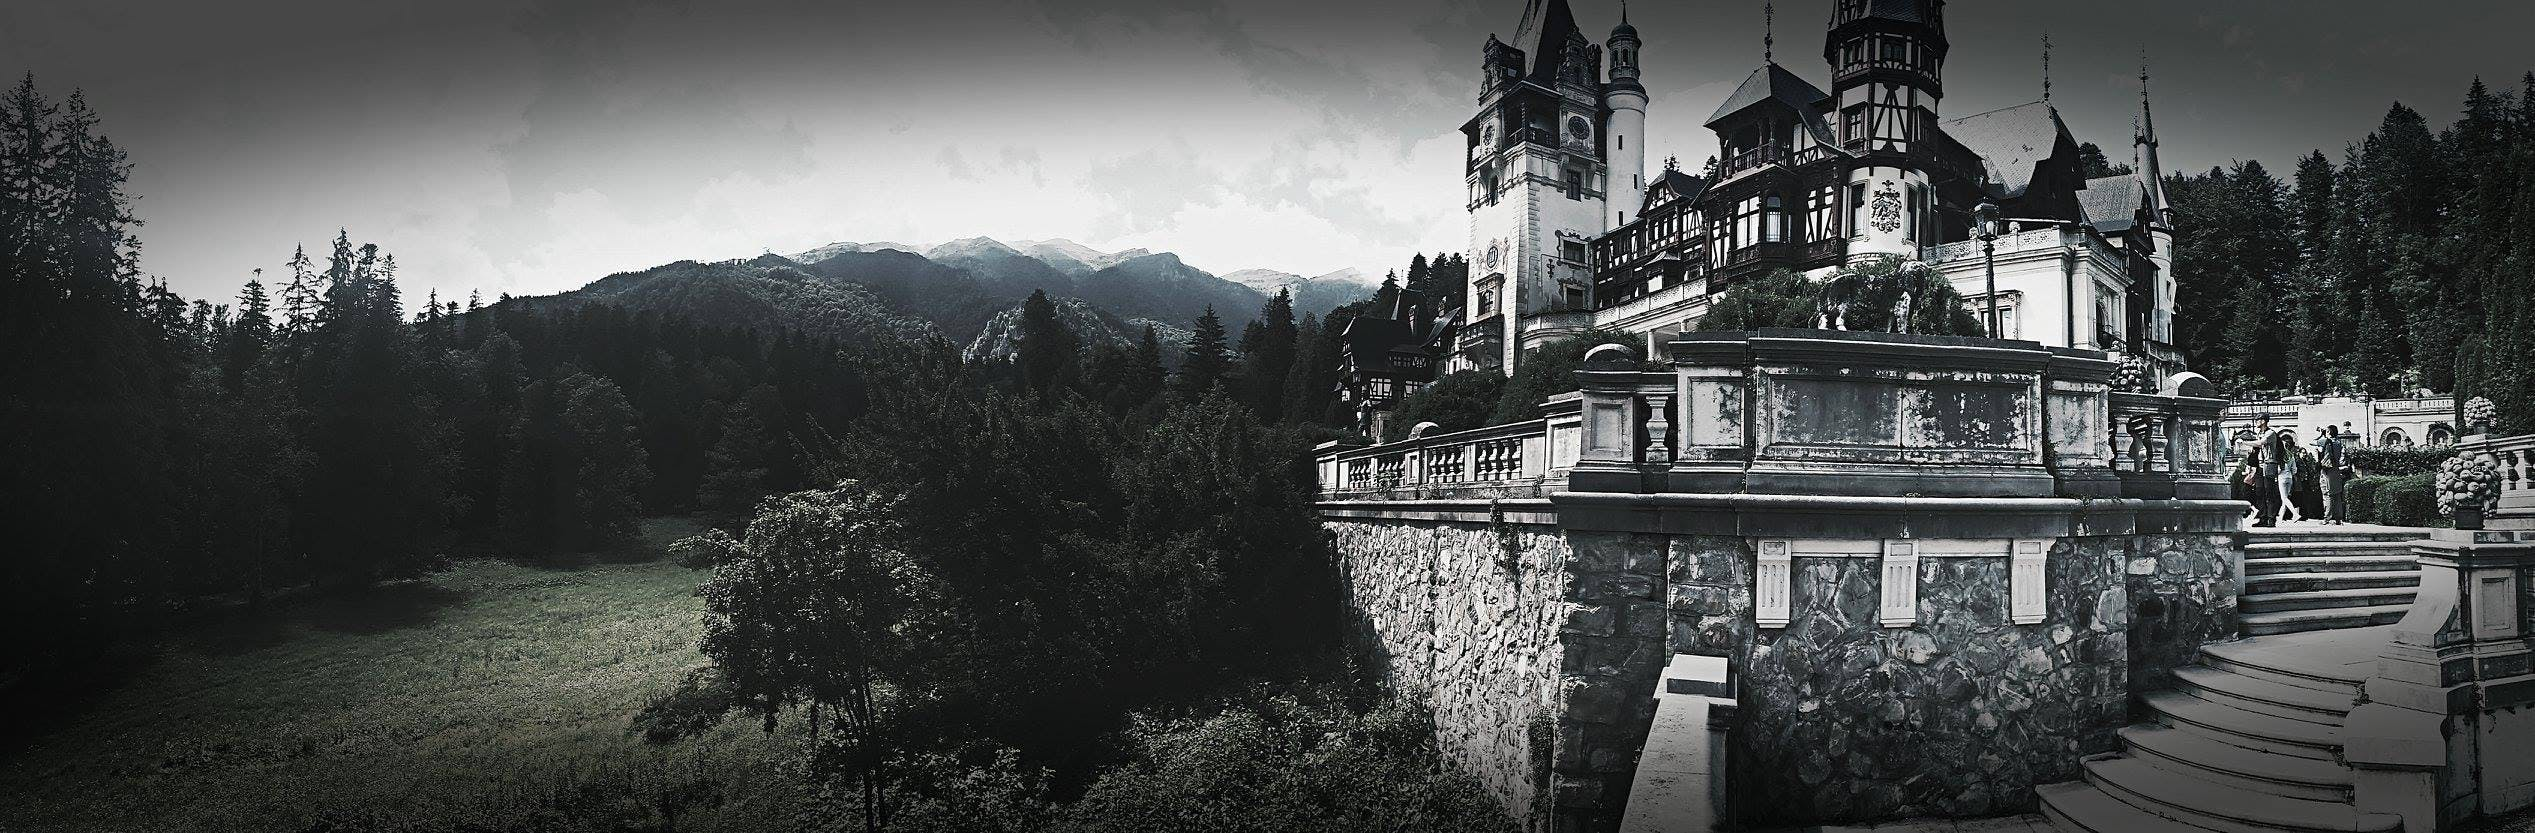 Free stock photo of black and white, castle, mobilechallenge, outdoorchallenge